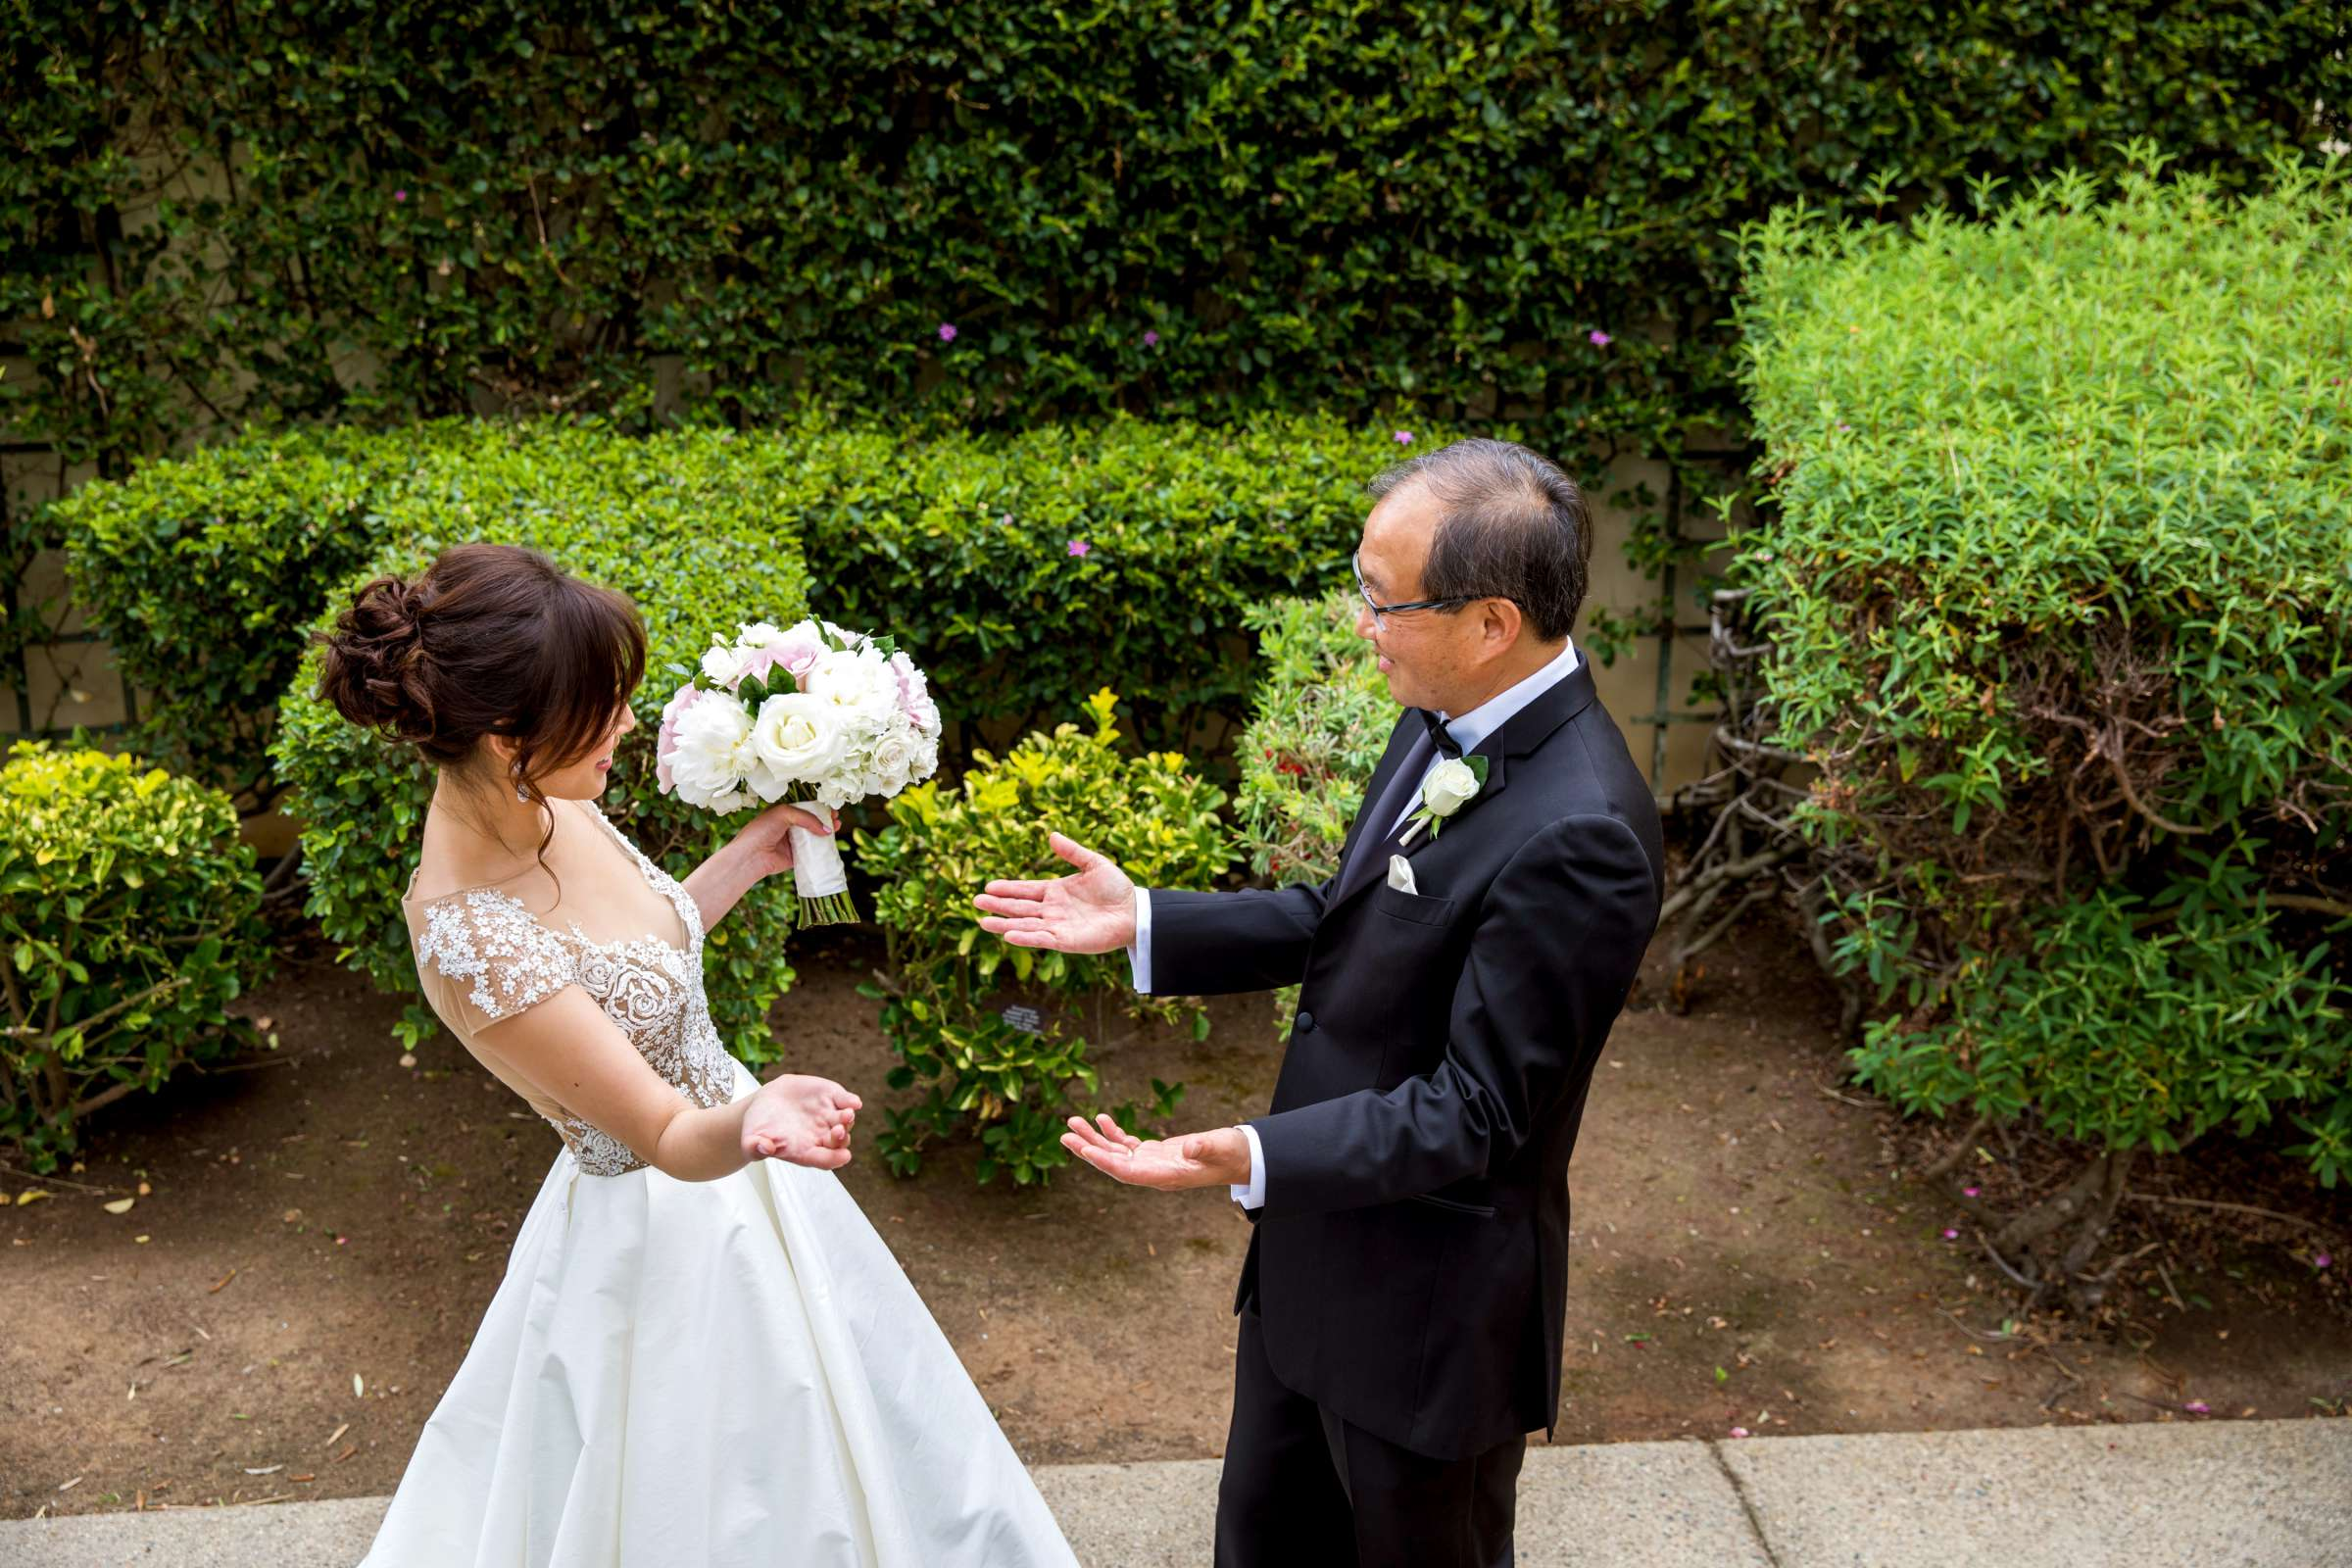 Estancia Wedding coordinated by Sweet Blossom Weddings, Allison and Alvin Wedding Photo #42 by True Photography